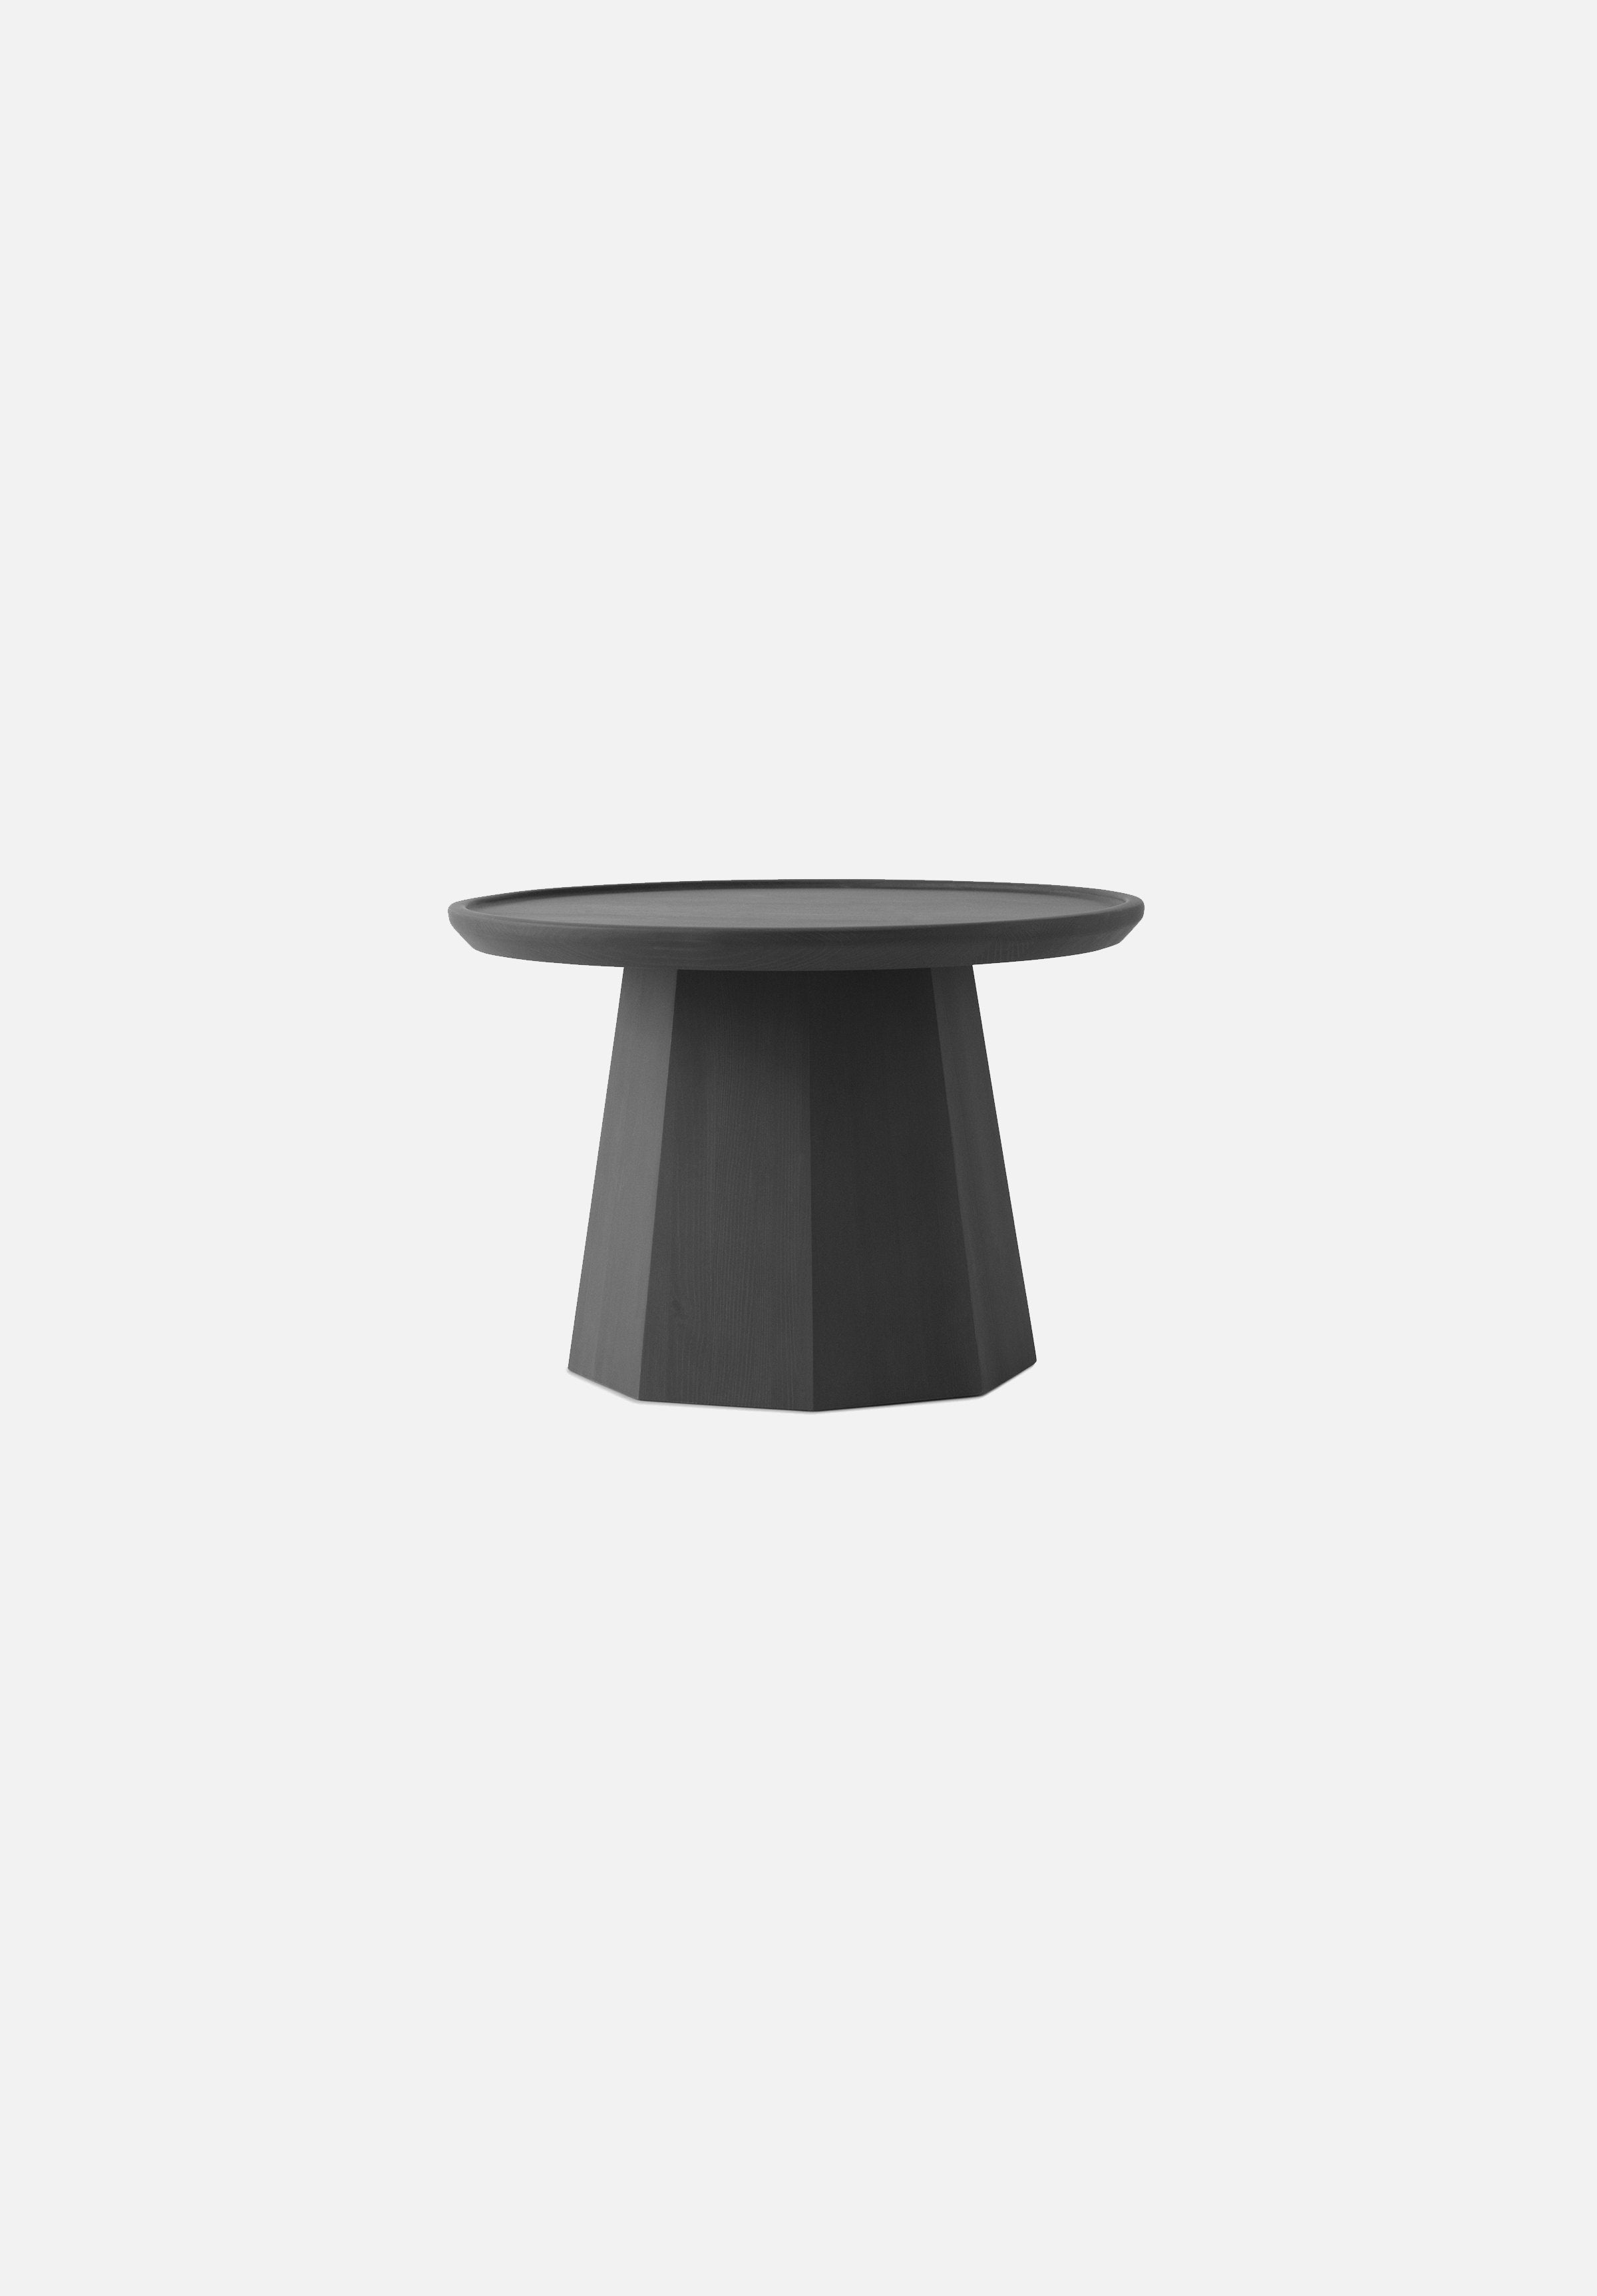 Pine Table-Simon Legald-Normann Copenhagen-black-Large-Average-canada-design-store-danish-denmark-furniture-interior